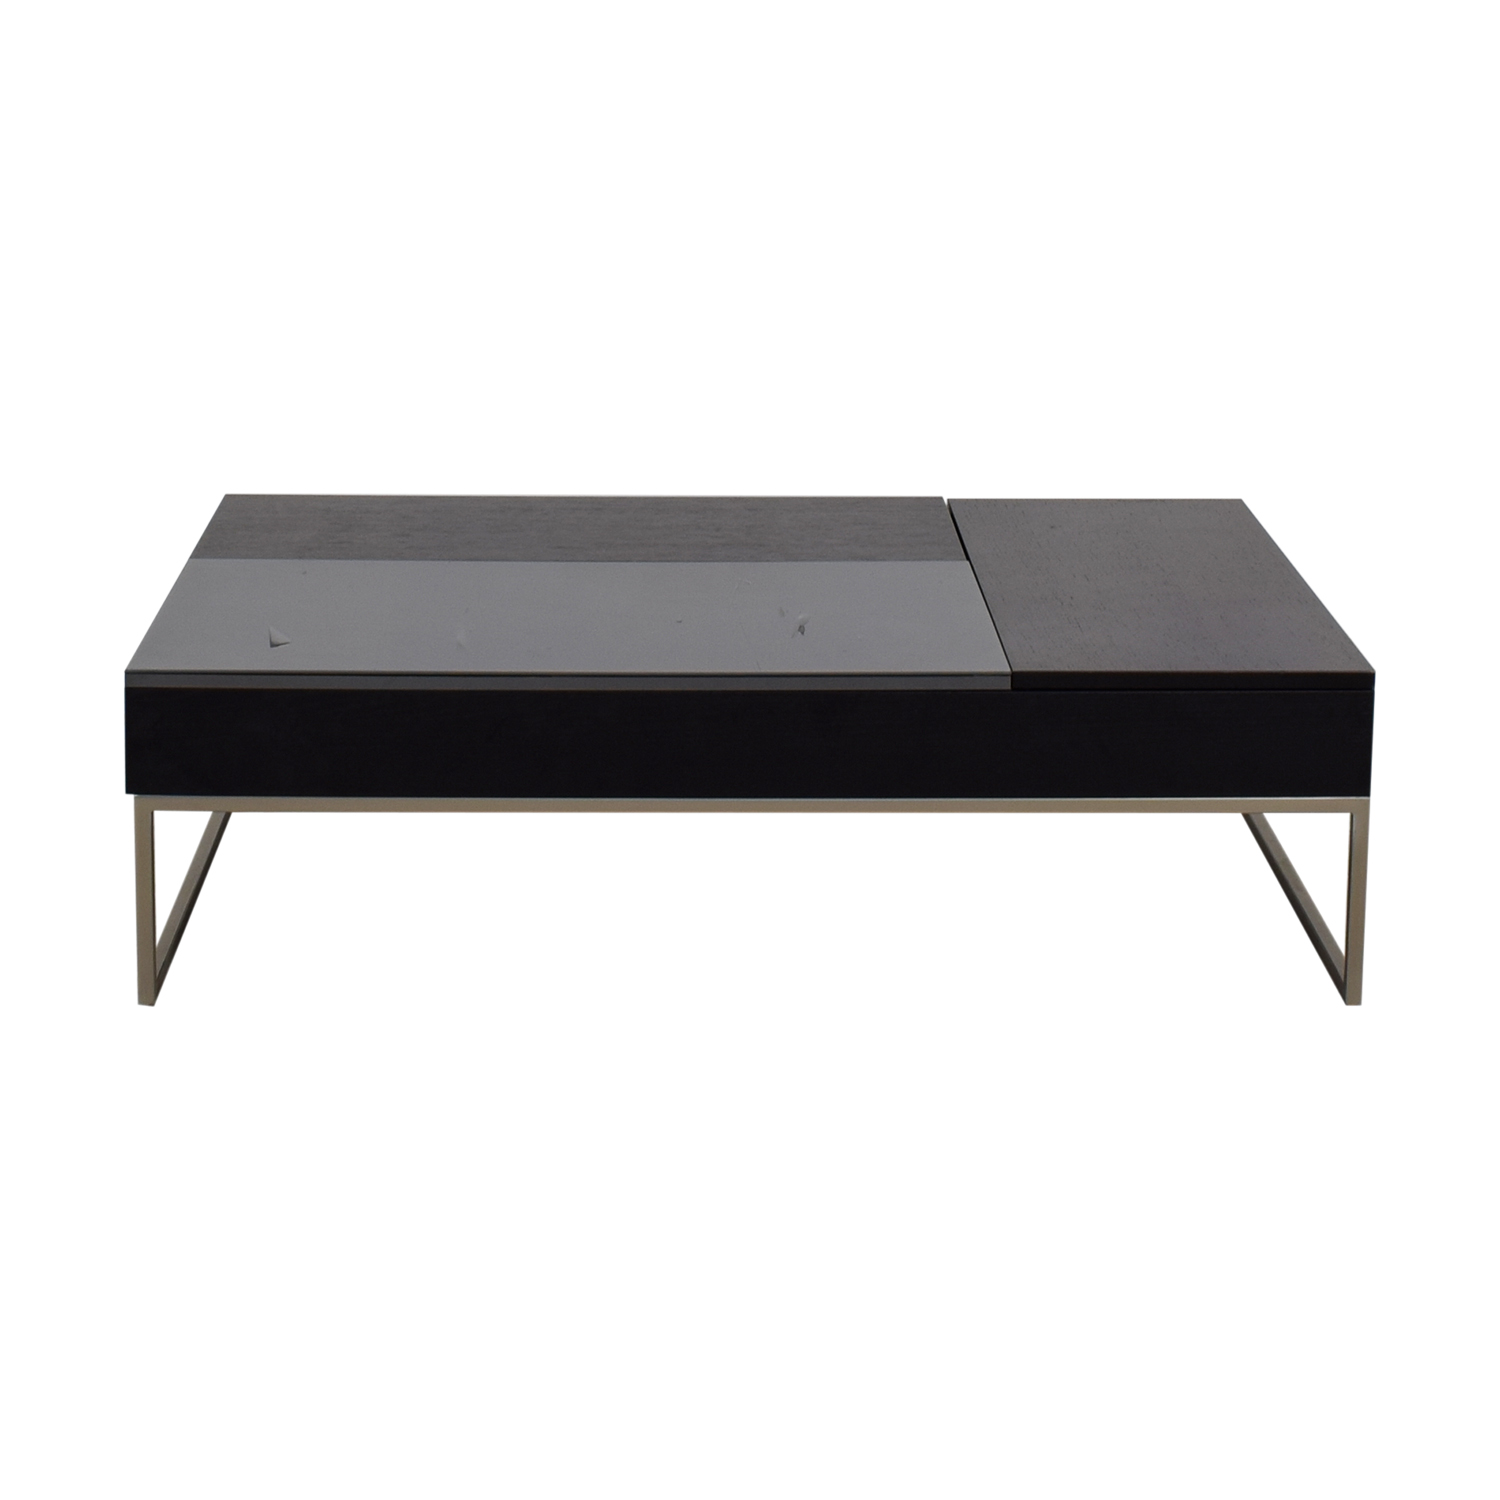 BoConcept Chiva Black Coffee Table with Storage / Sofas